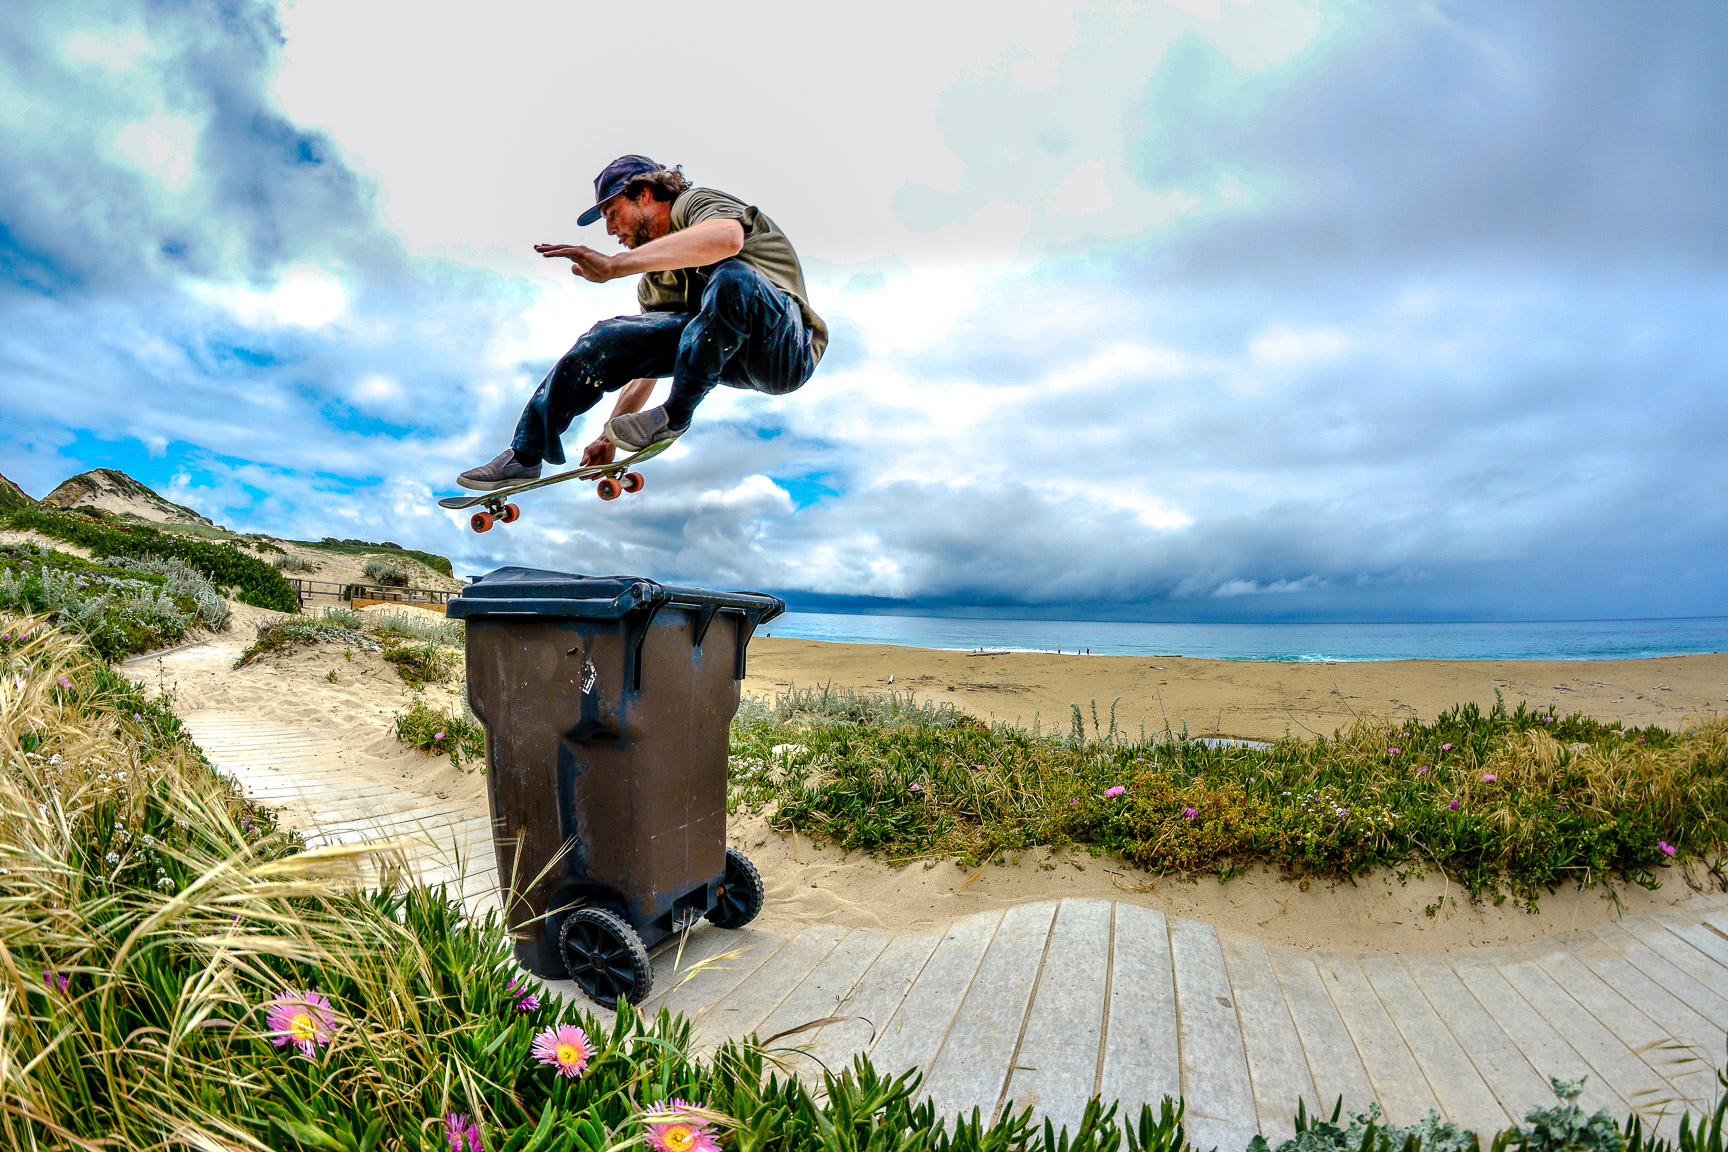 Alex Boosinger, Santa Cruz, California